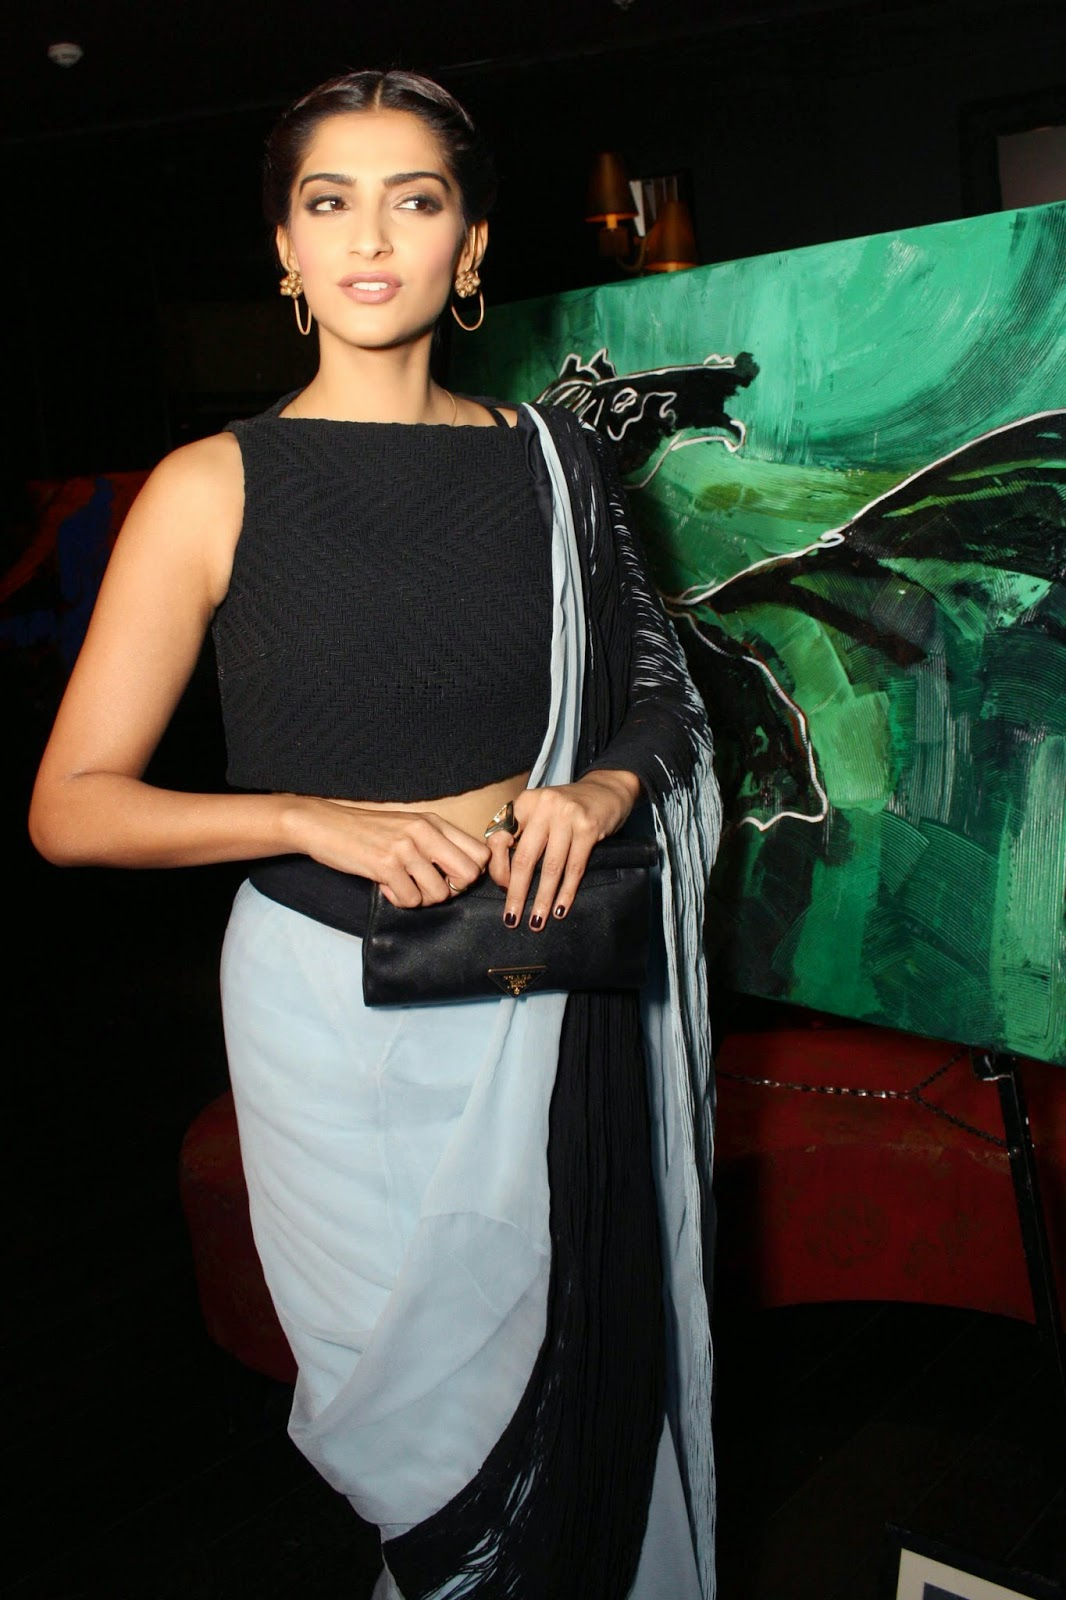 High Quality Bollywood Celebrity Pictures Sonam Kapoor -8297